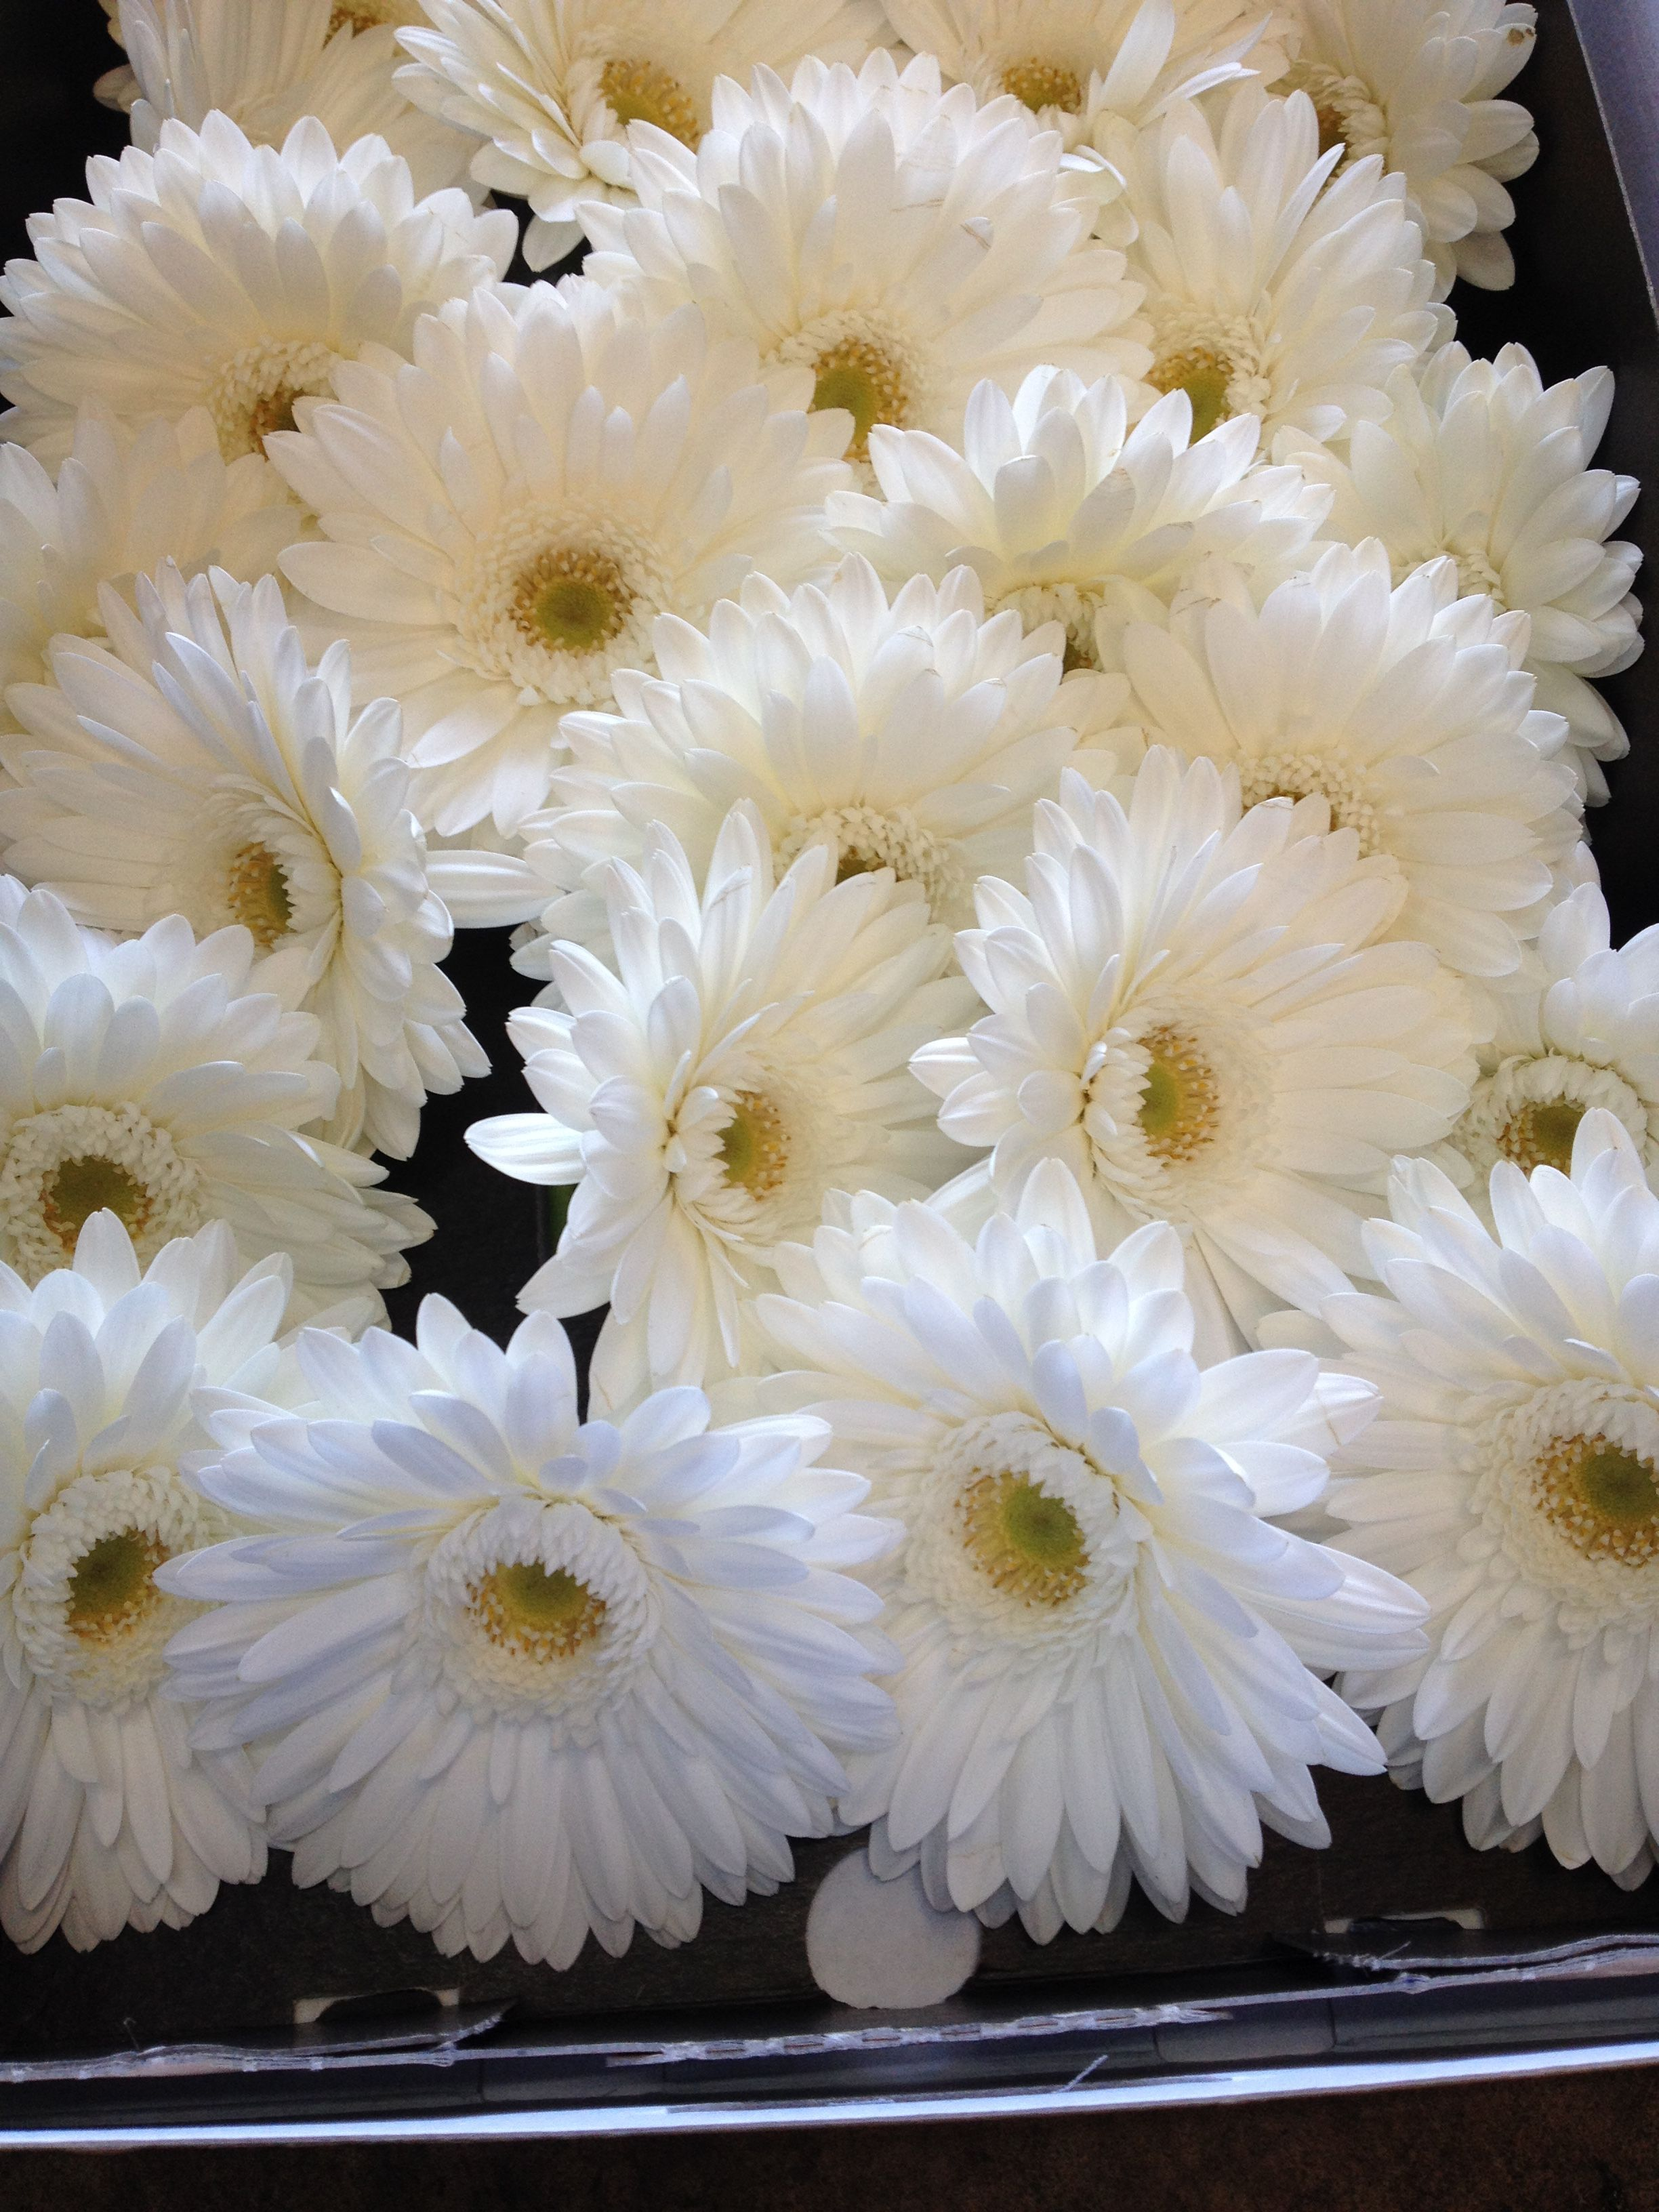 Large Gerbera called 'Pole Ice' Sold in boxes of 25 or 50